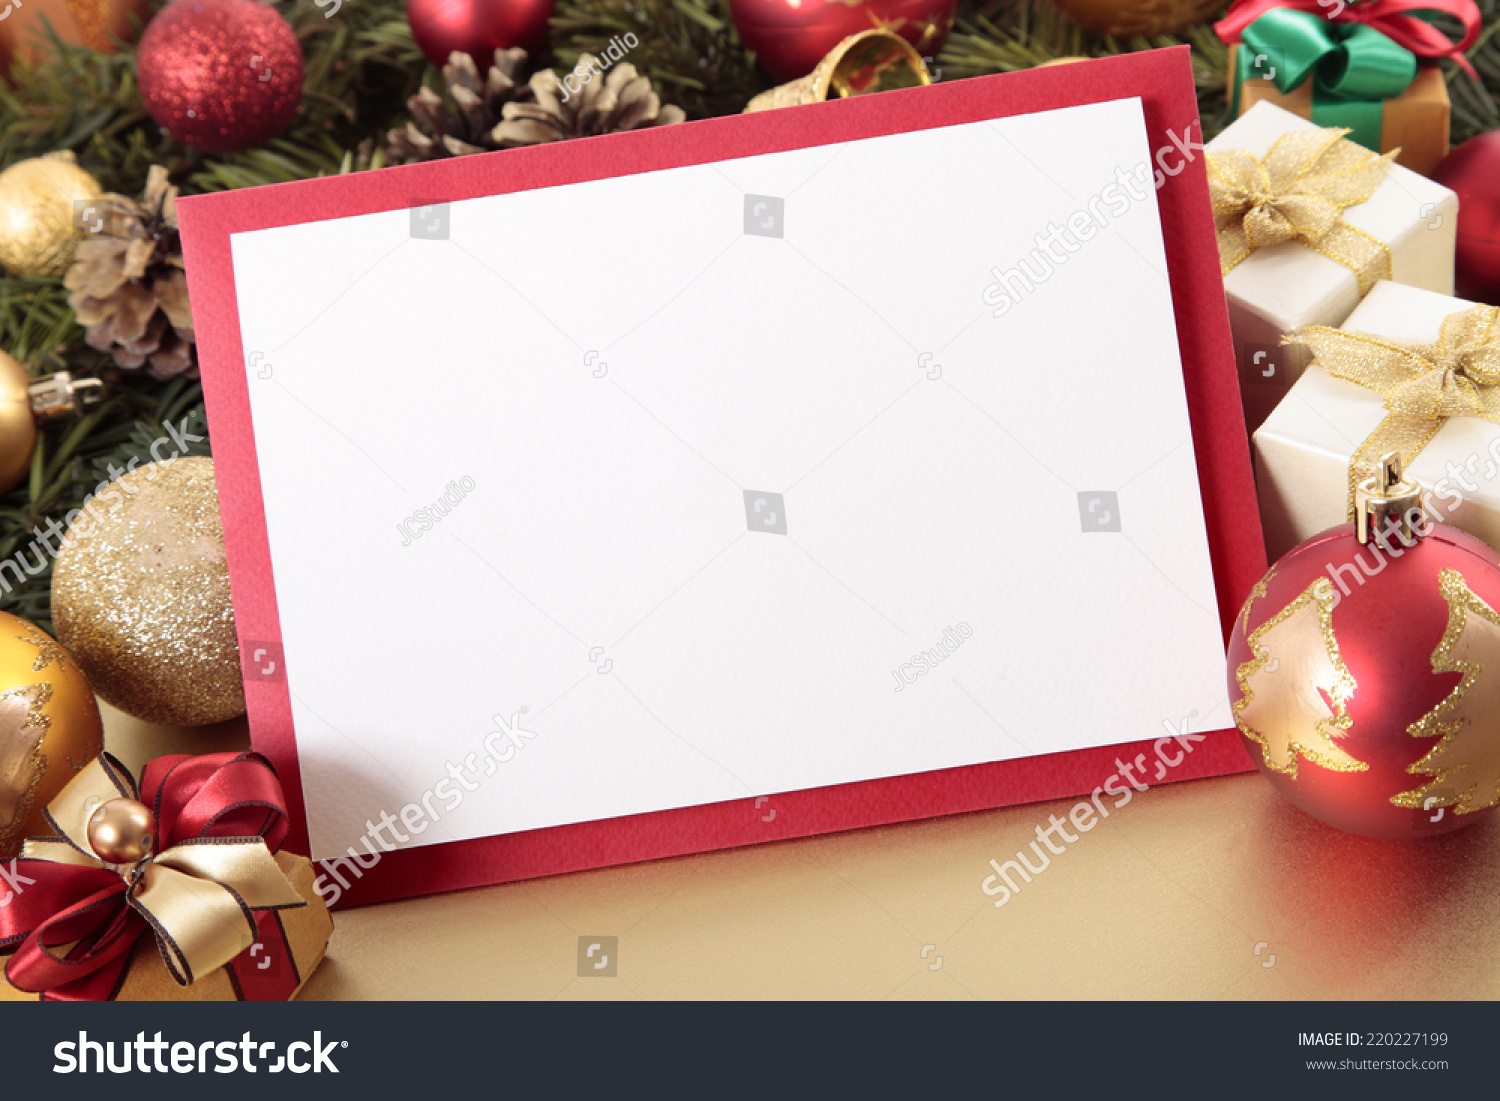 Blank Christmas Card Invitation Red Envelope Stock Photo (Edit Now ...